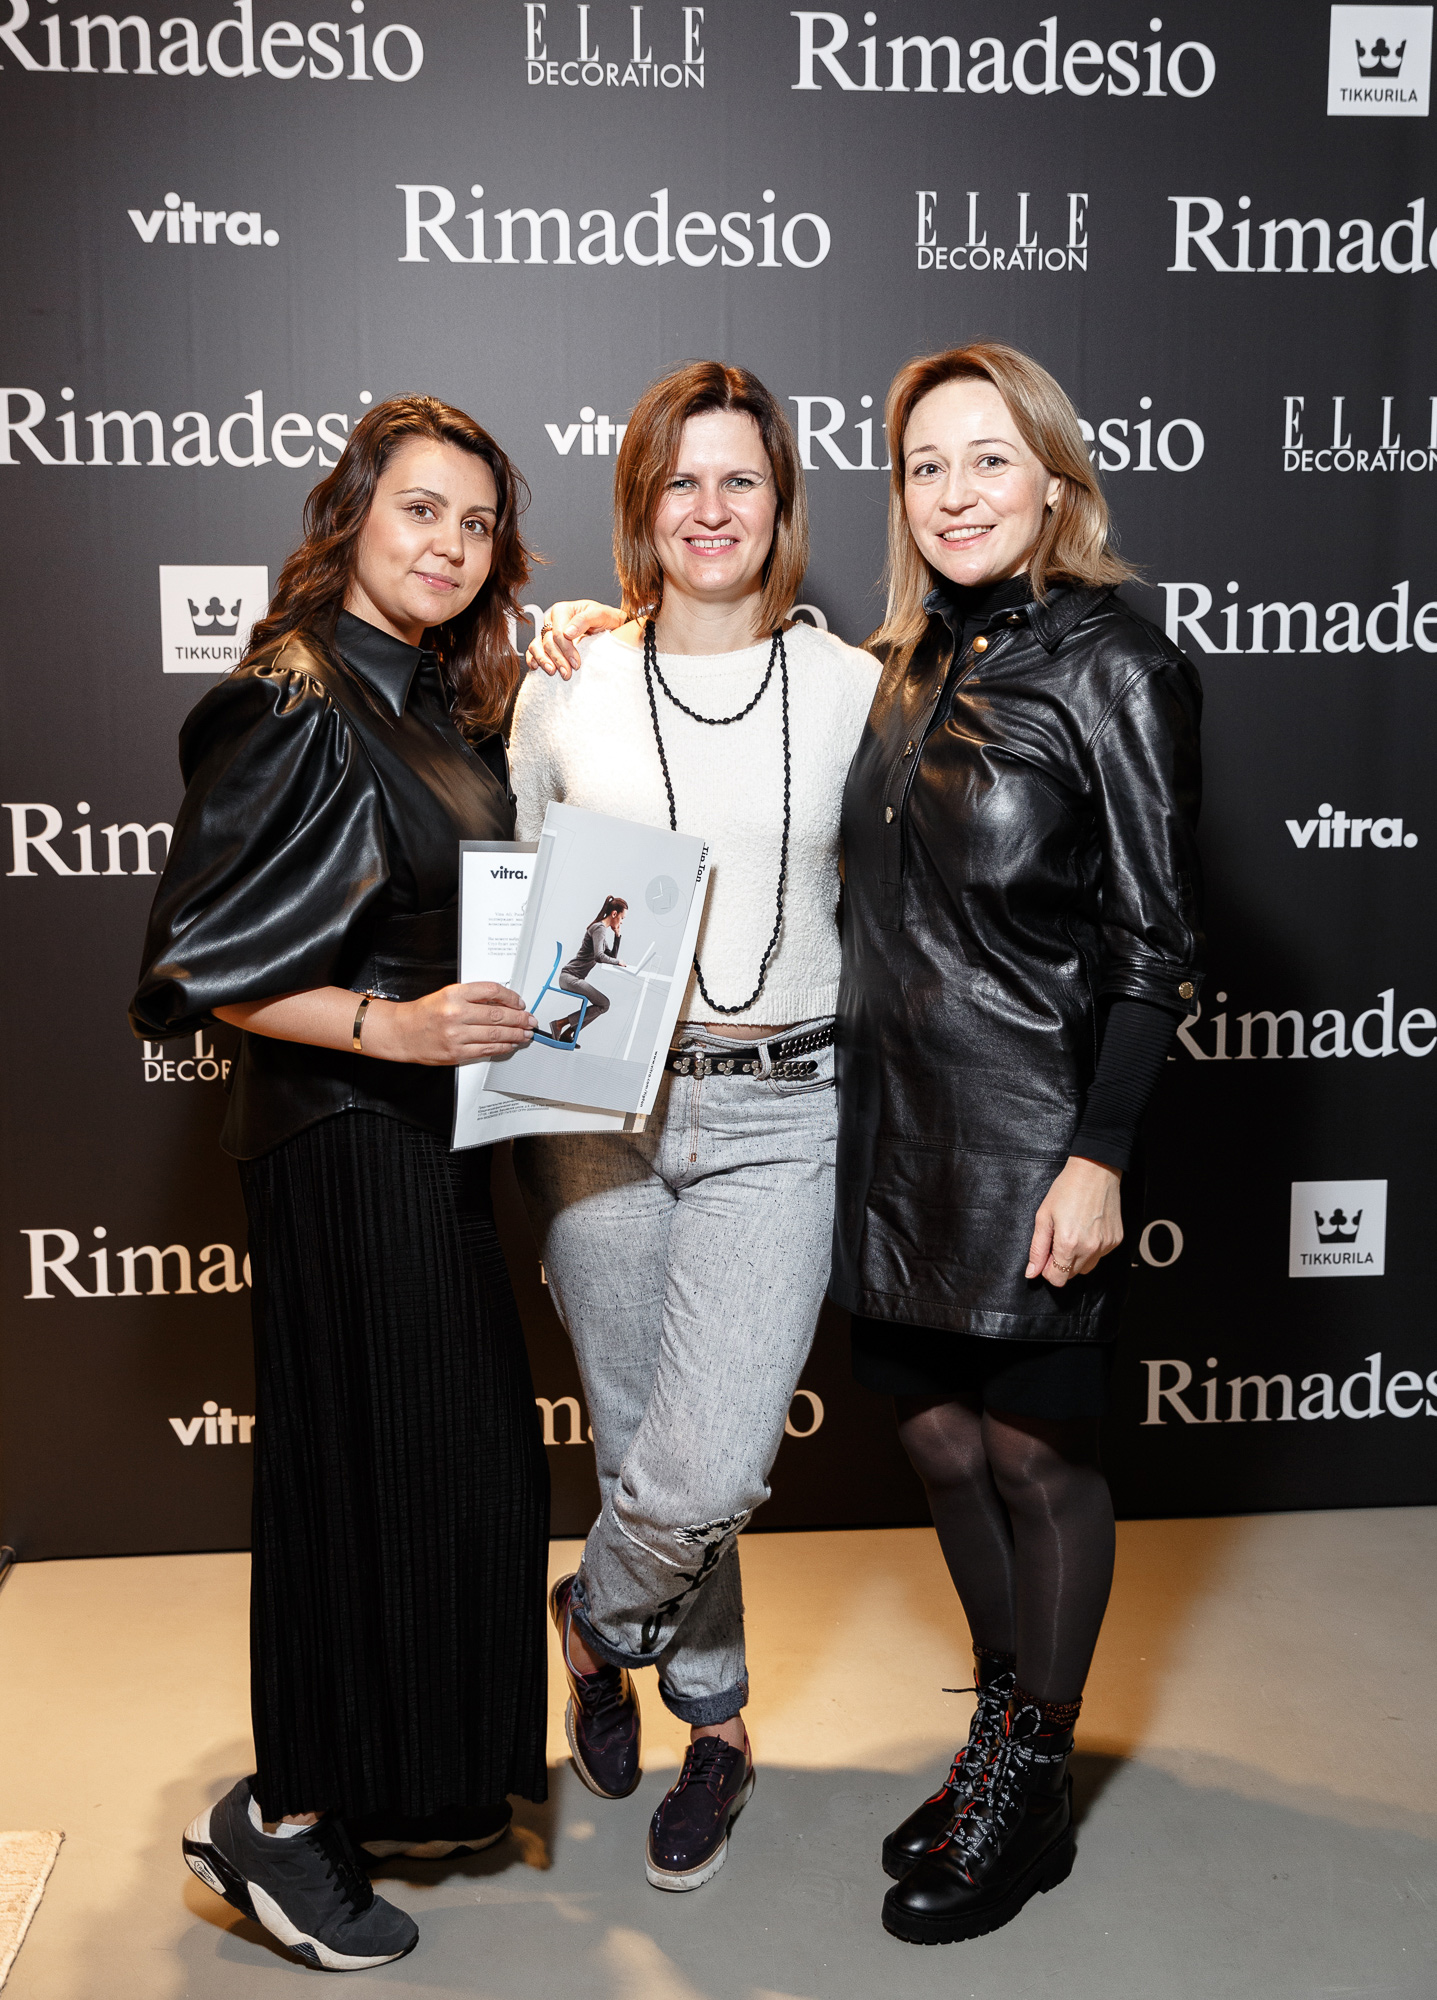 rimadesio-moscow-233